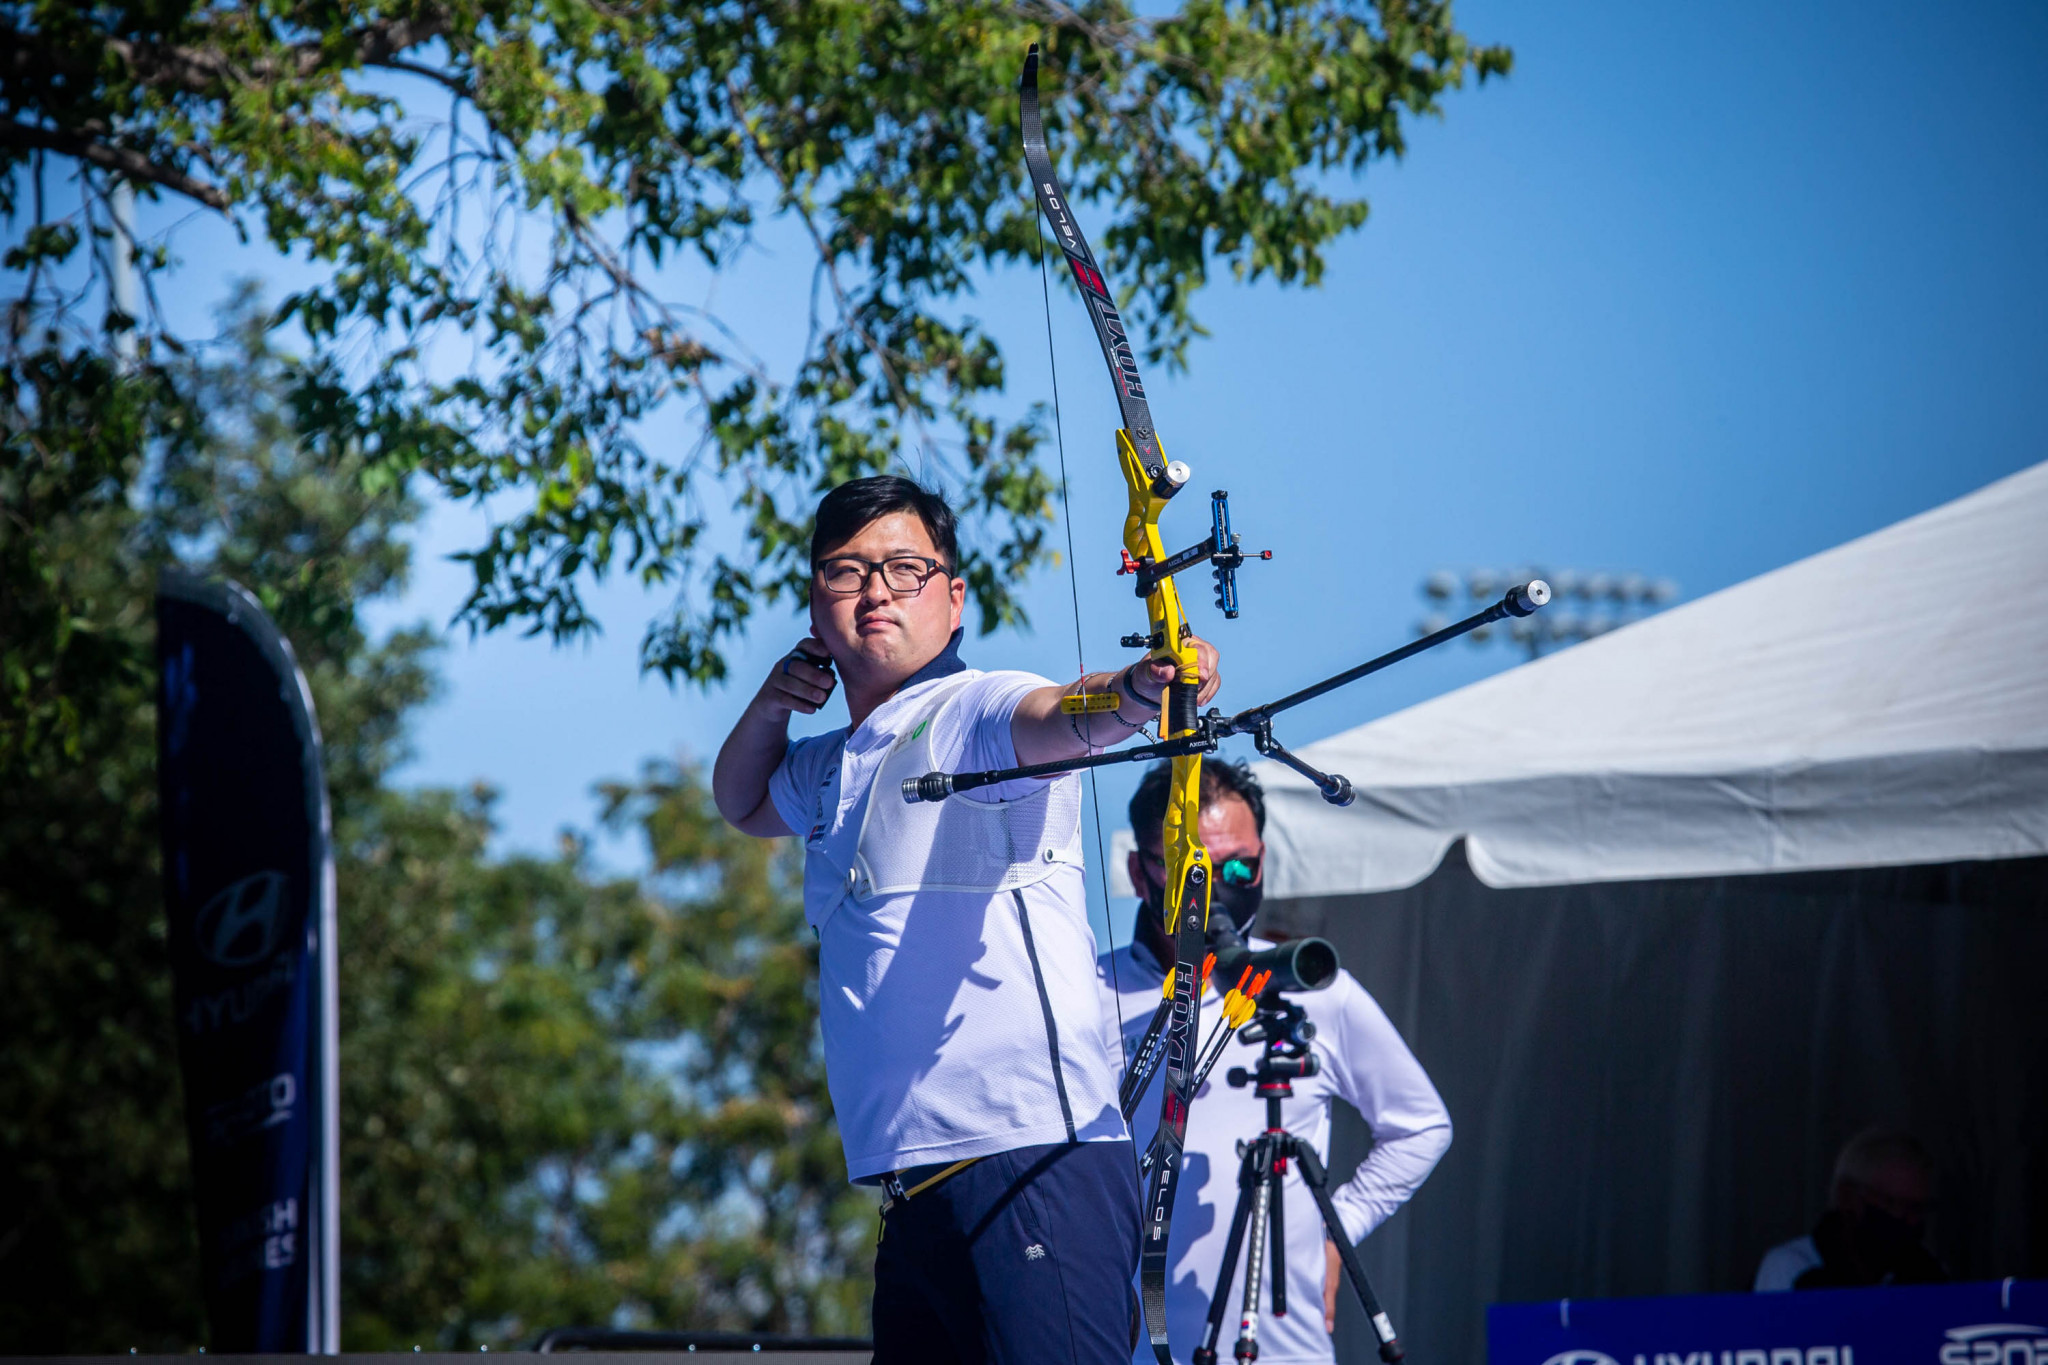 South Koreans Kim and Jang triumph in recurve finals at World Archery Championships